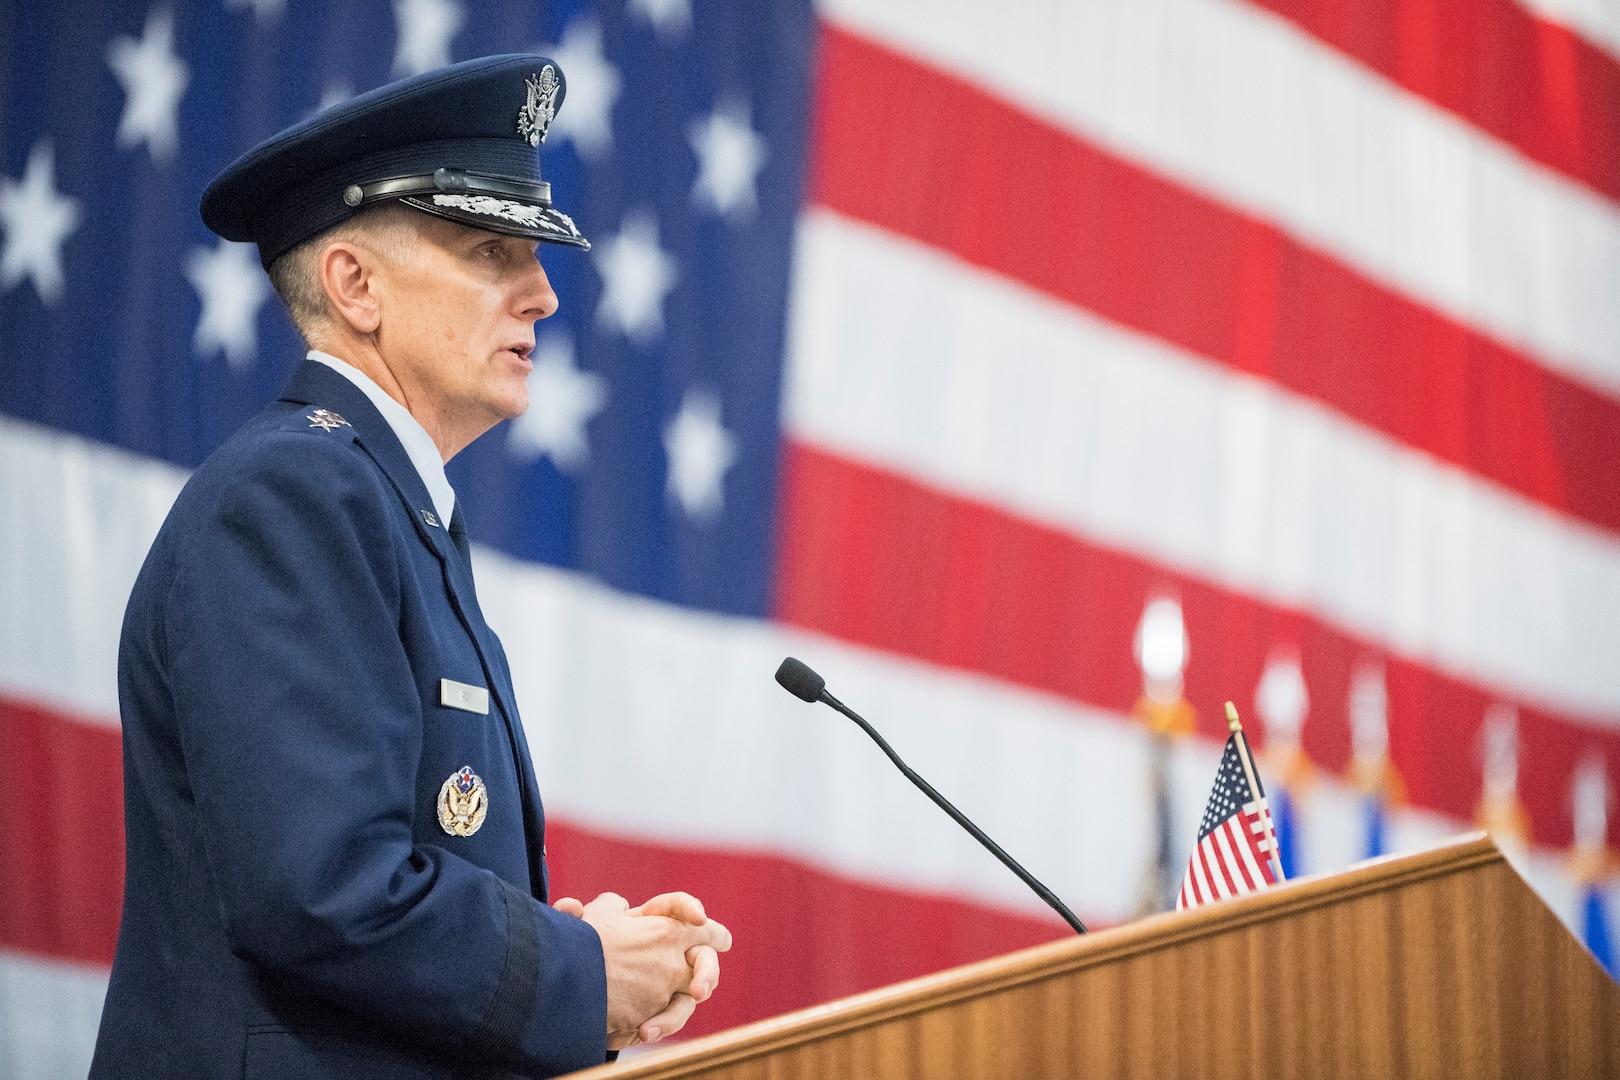 Gen. Timothy Ray addresses the audience after assuming command of Air Force Global Strike Command during a ceremony at Barksdale Air Force Base, La., Aug. 21, 2018